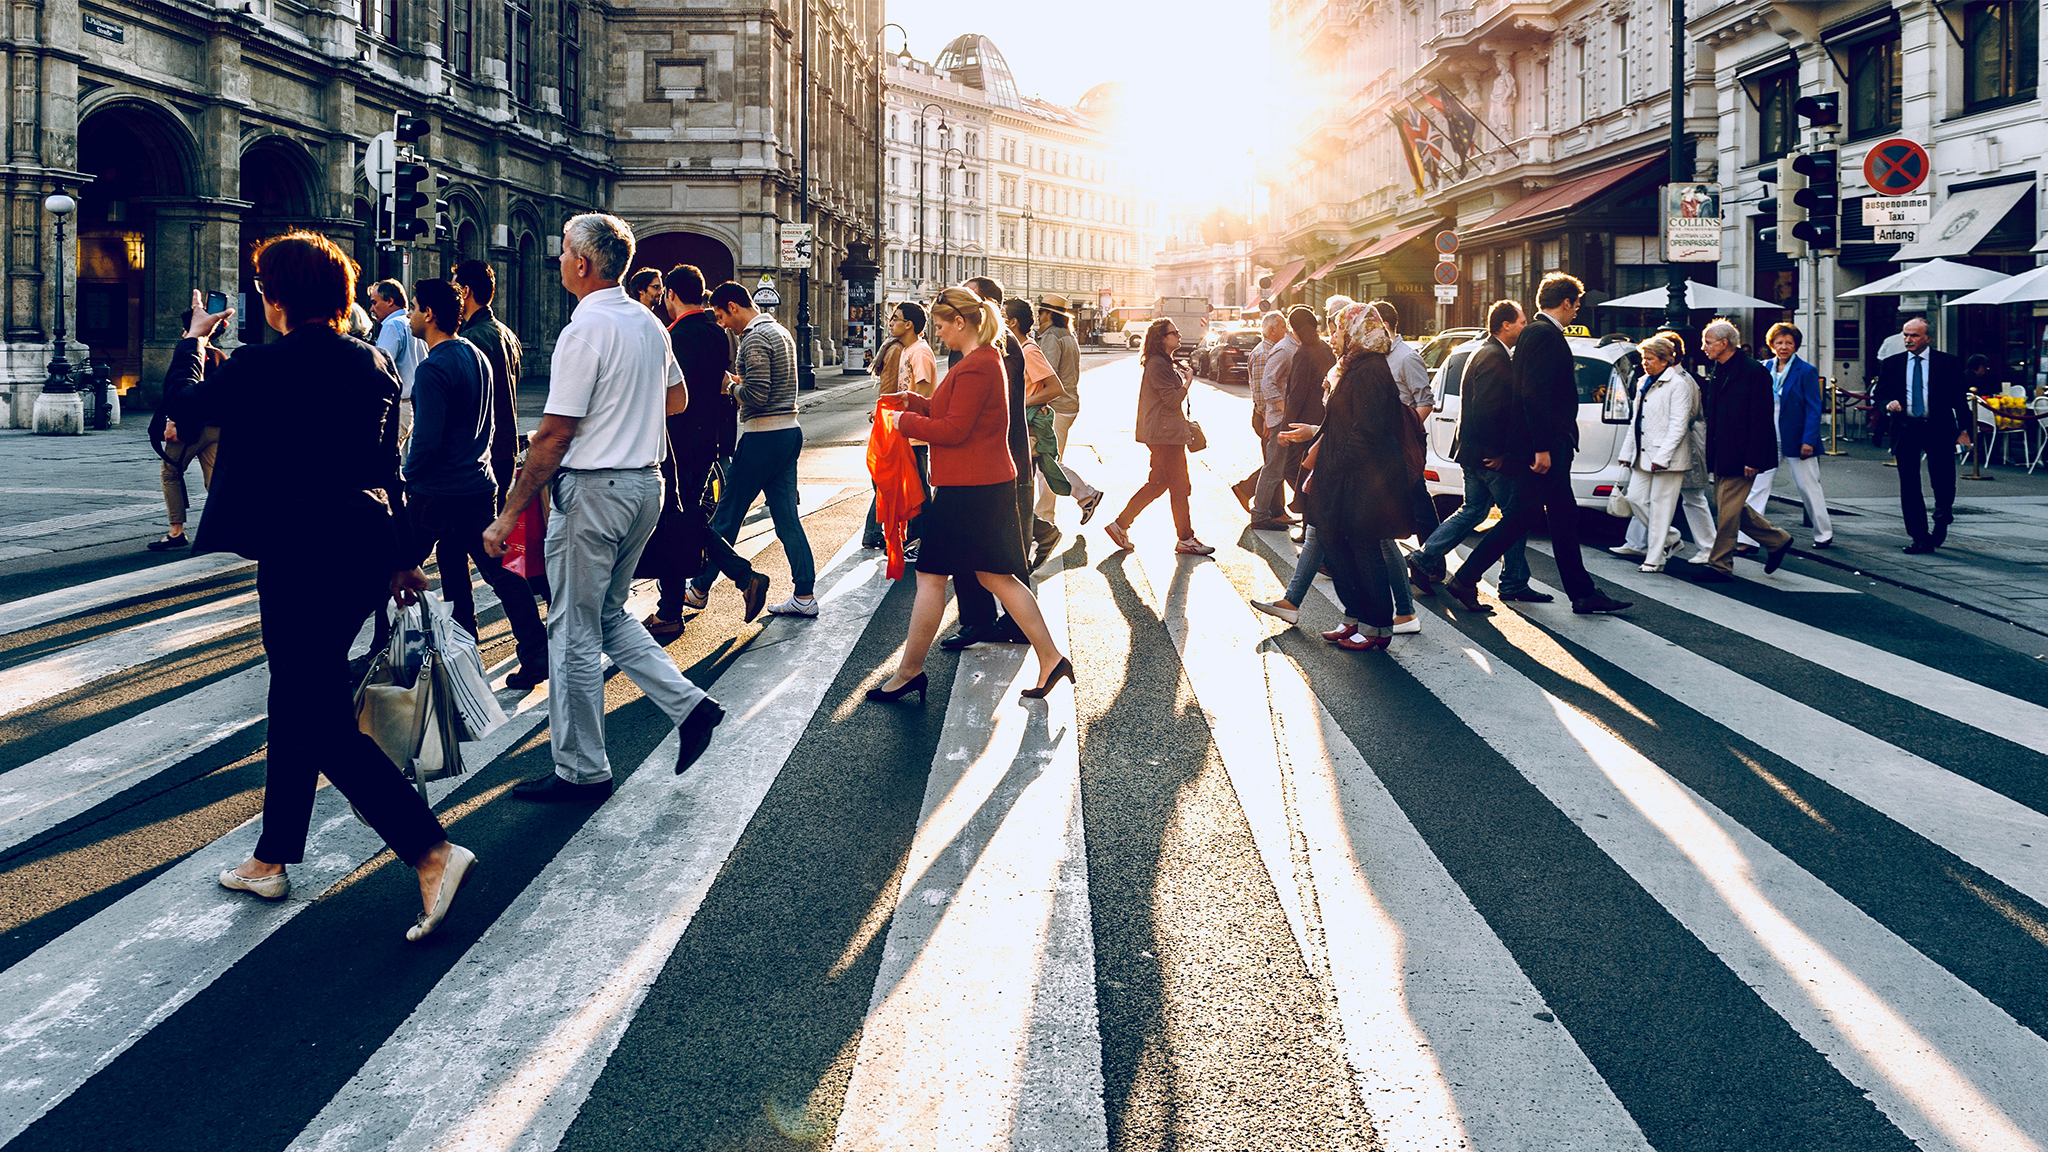 Image of a crowd of people walking over a crossing